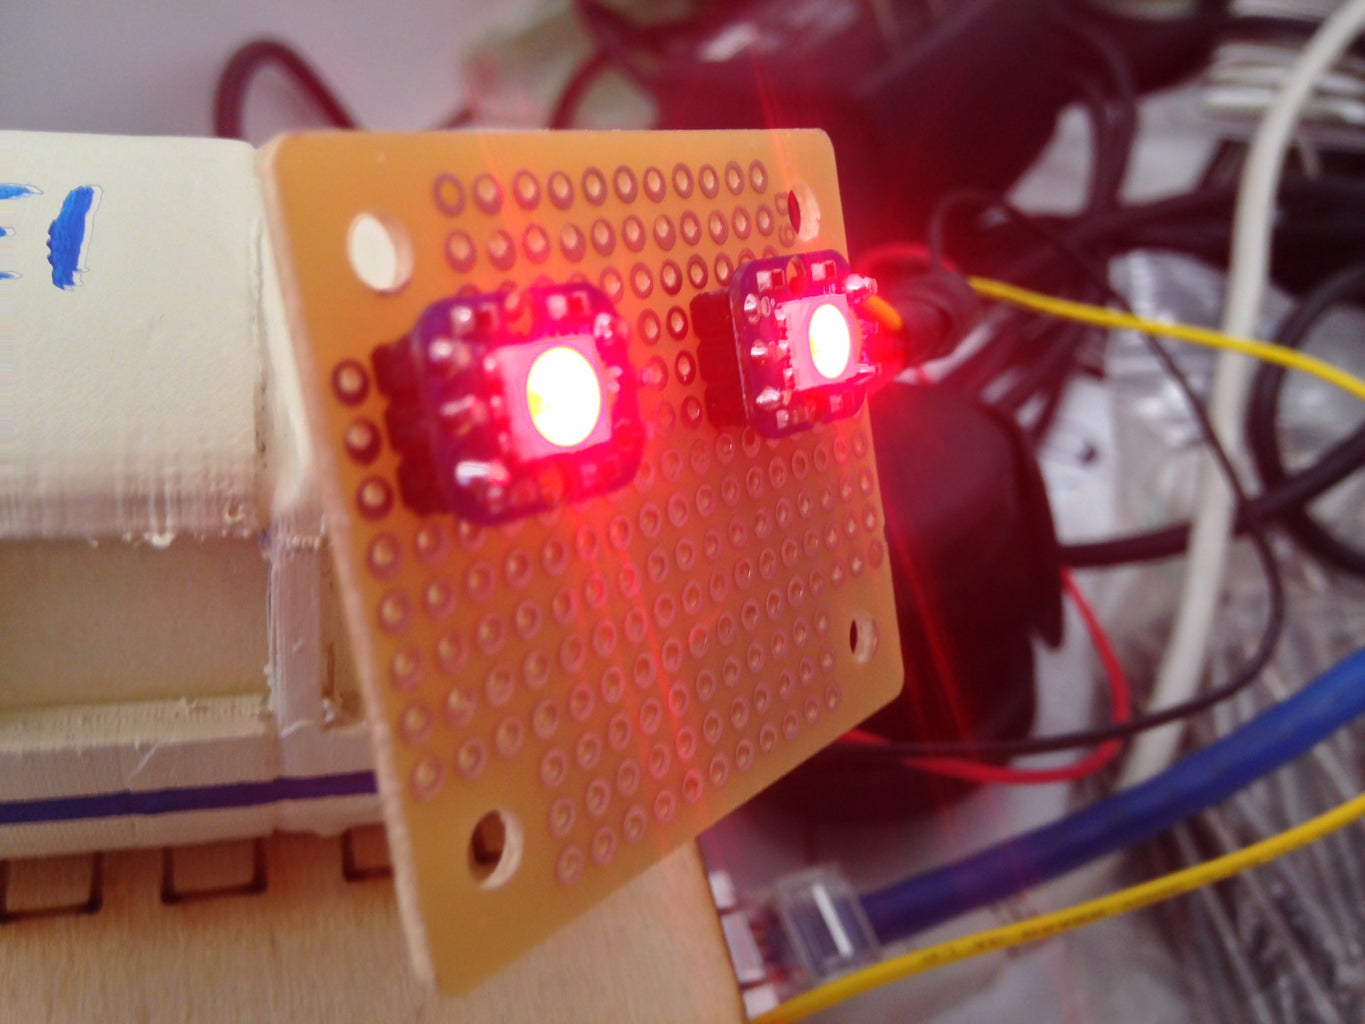 Solder Neo Pixels Together and to PCB Board